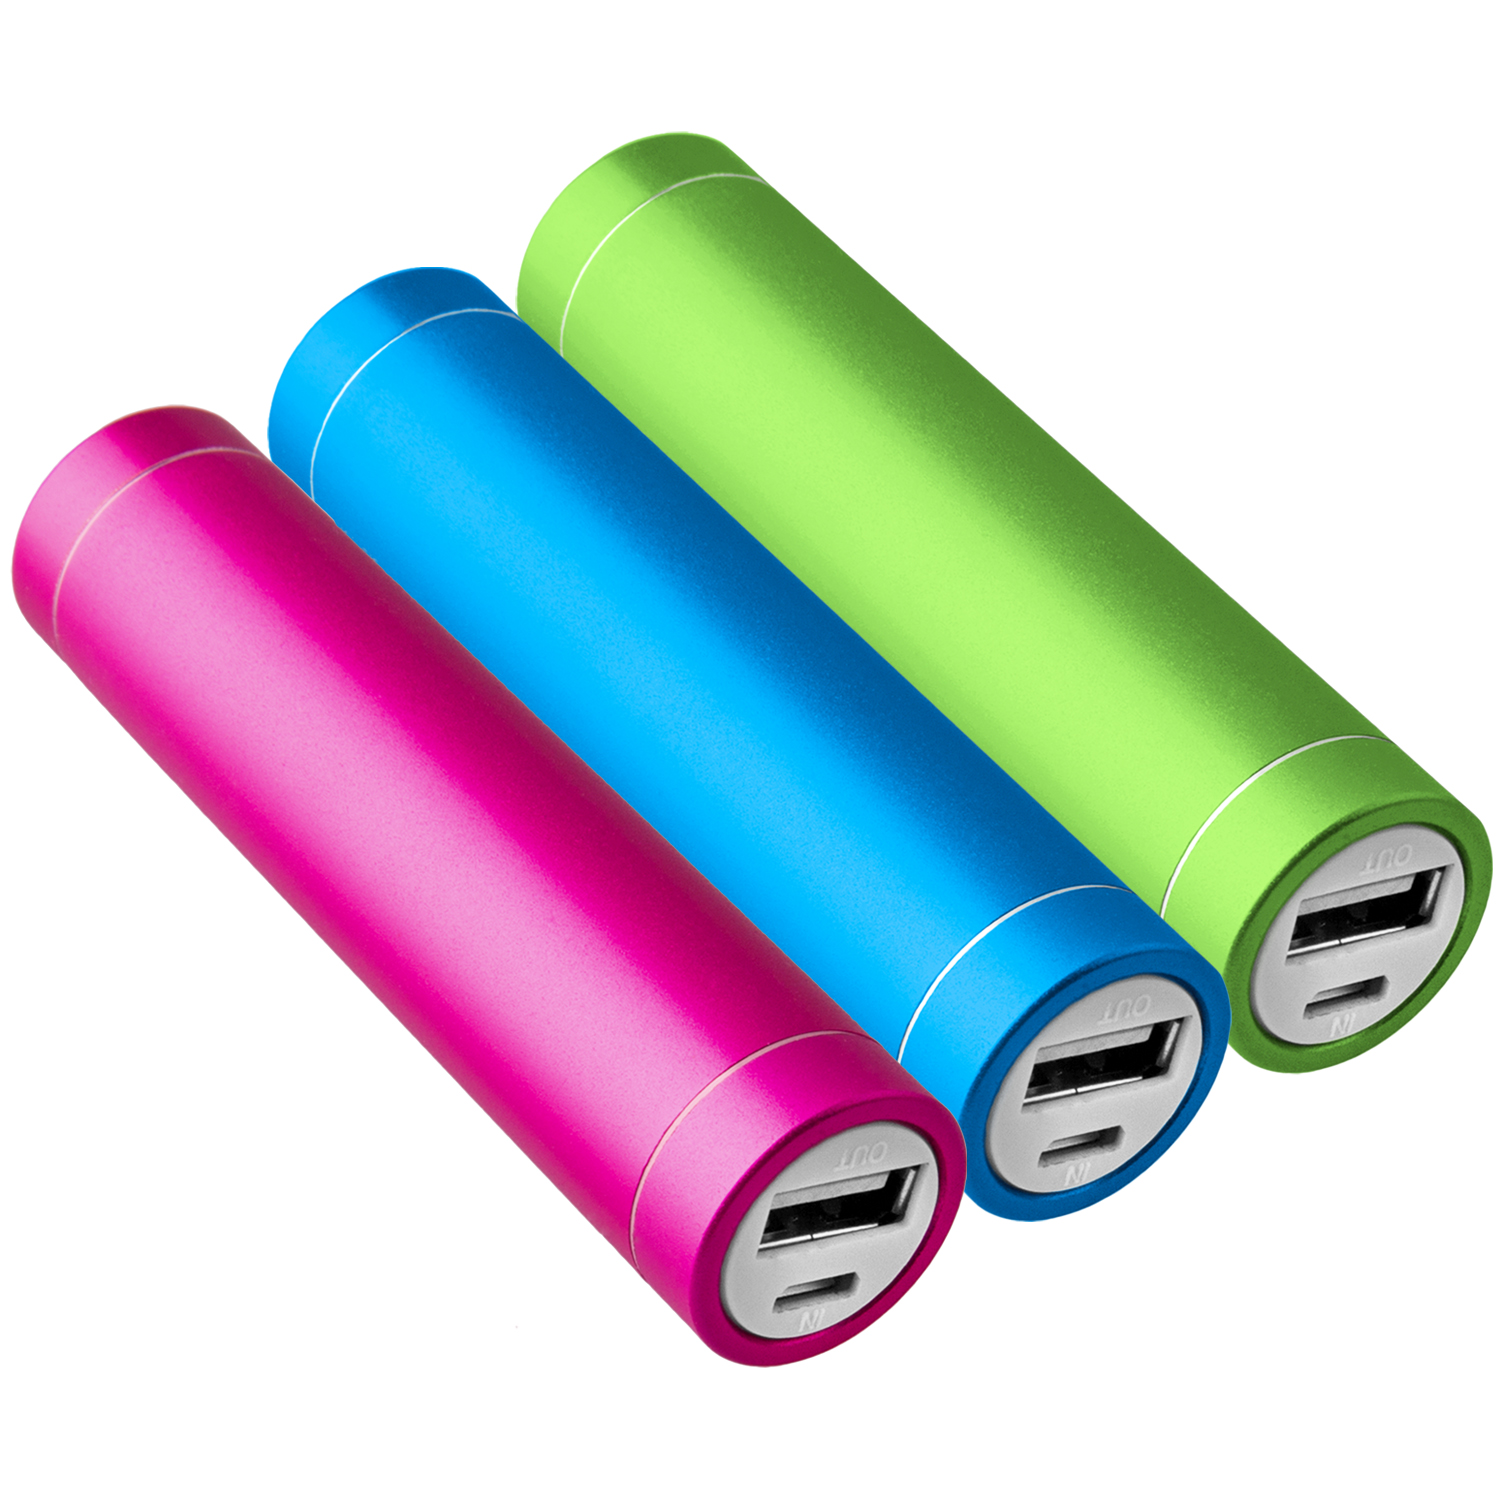 3x-Power-Bank-Akku-2600-mAh-Ladegeraet-extern-USB-iPhone-gruen-pink-blau-NT003